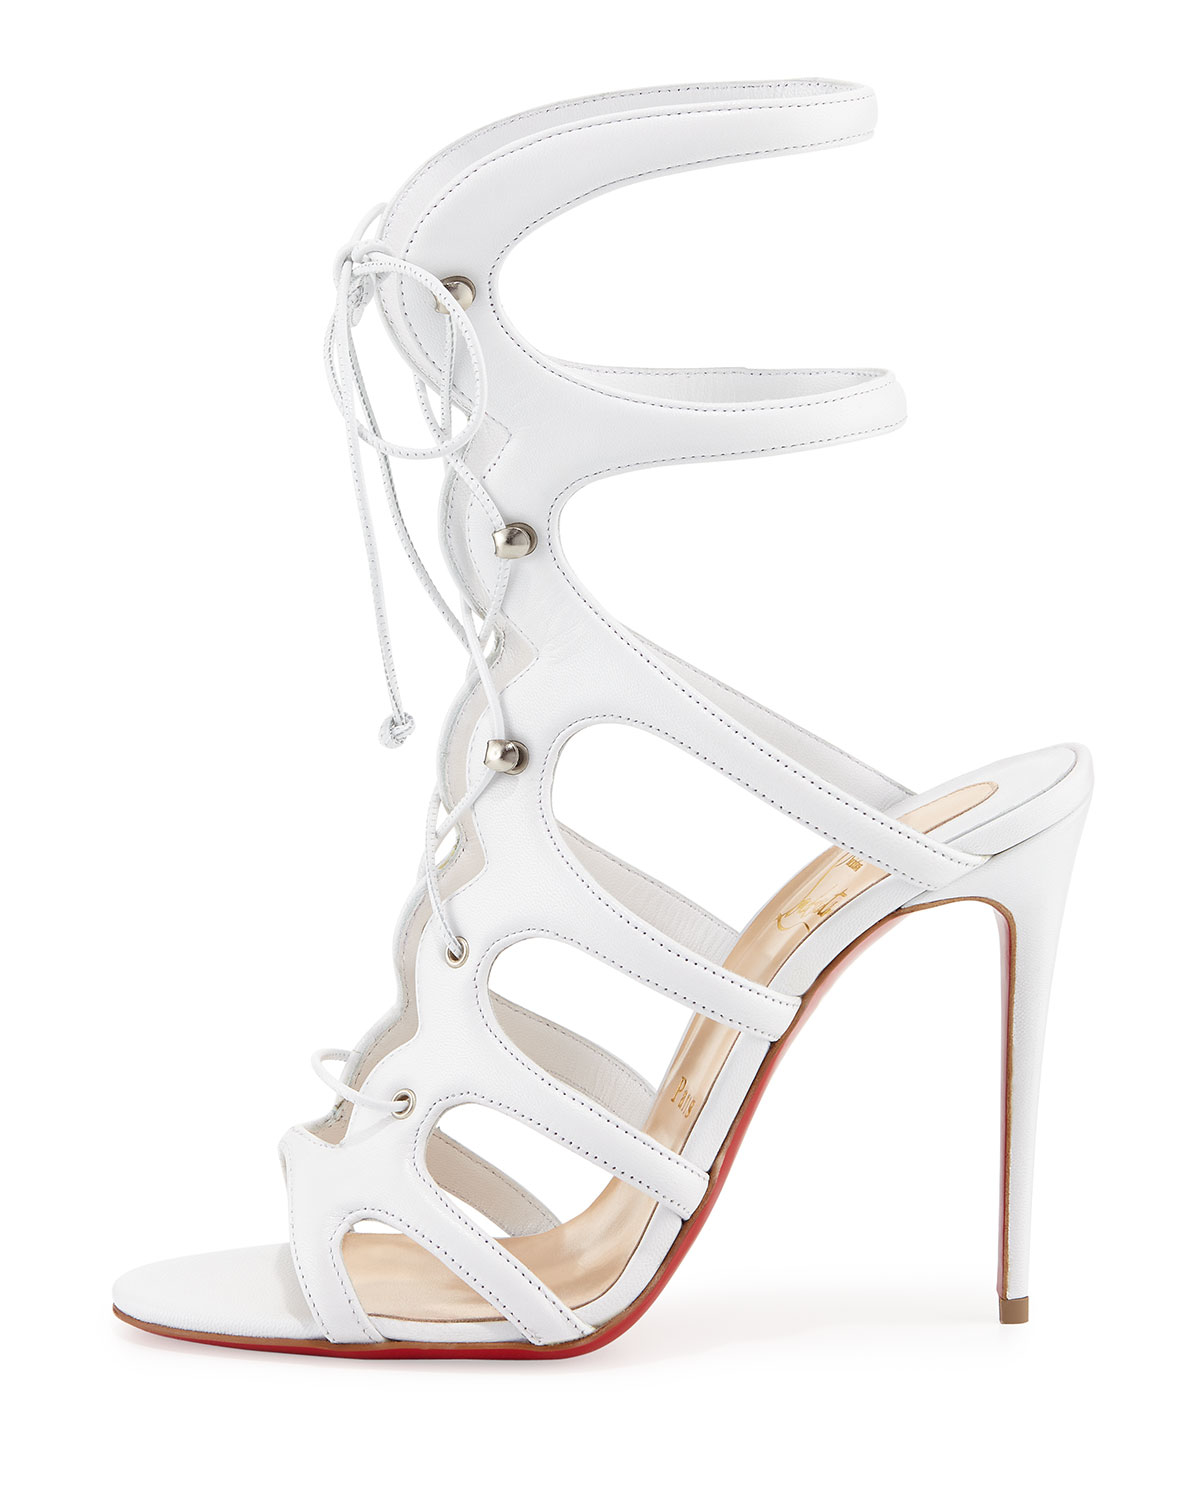 louboutin shoe price - Christian louboutin Amazoula Lace-up Red Sole Sandal in White | Lyst